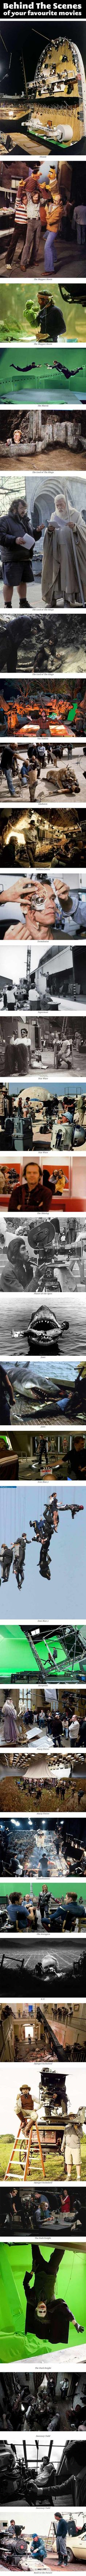 Behind the scenes of some AMAZING movies!